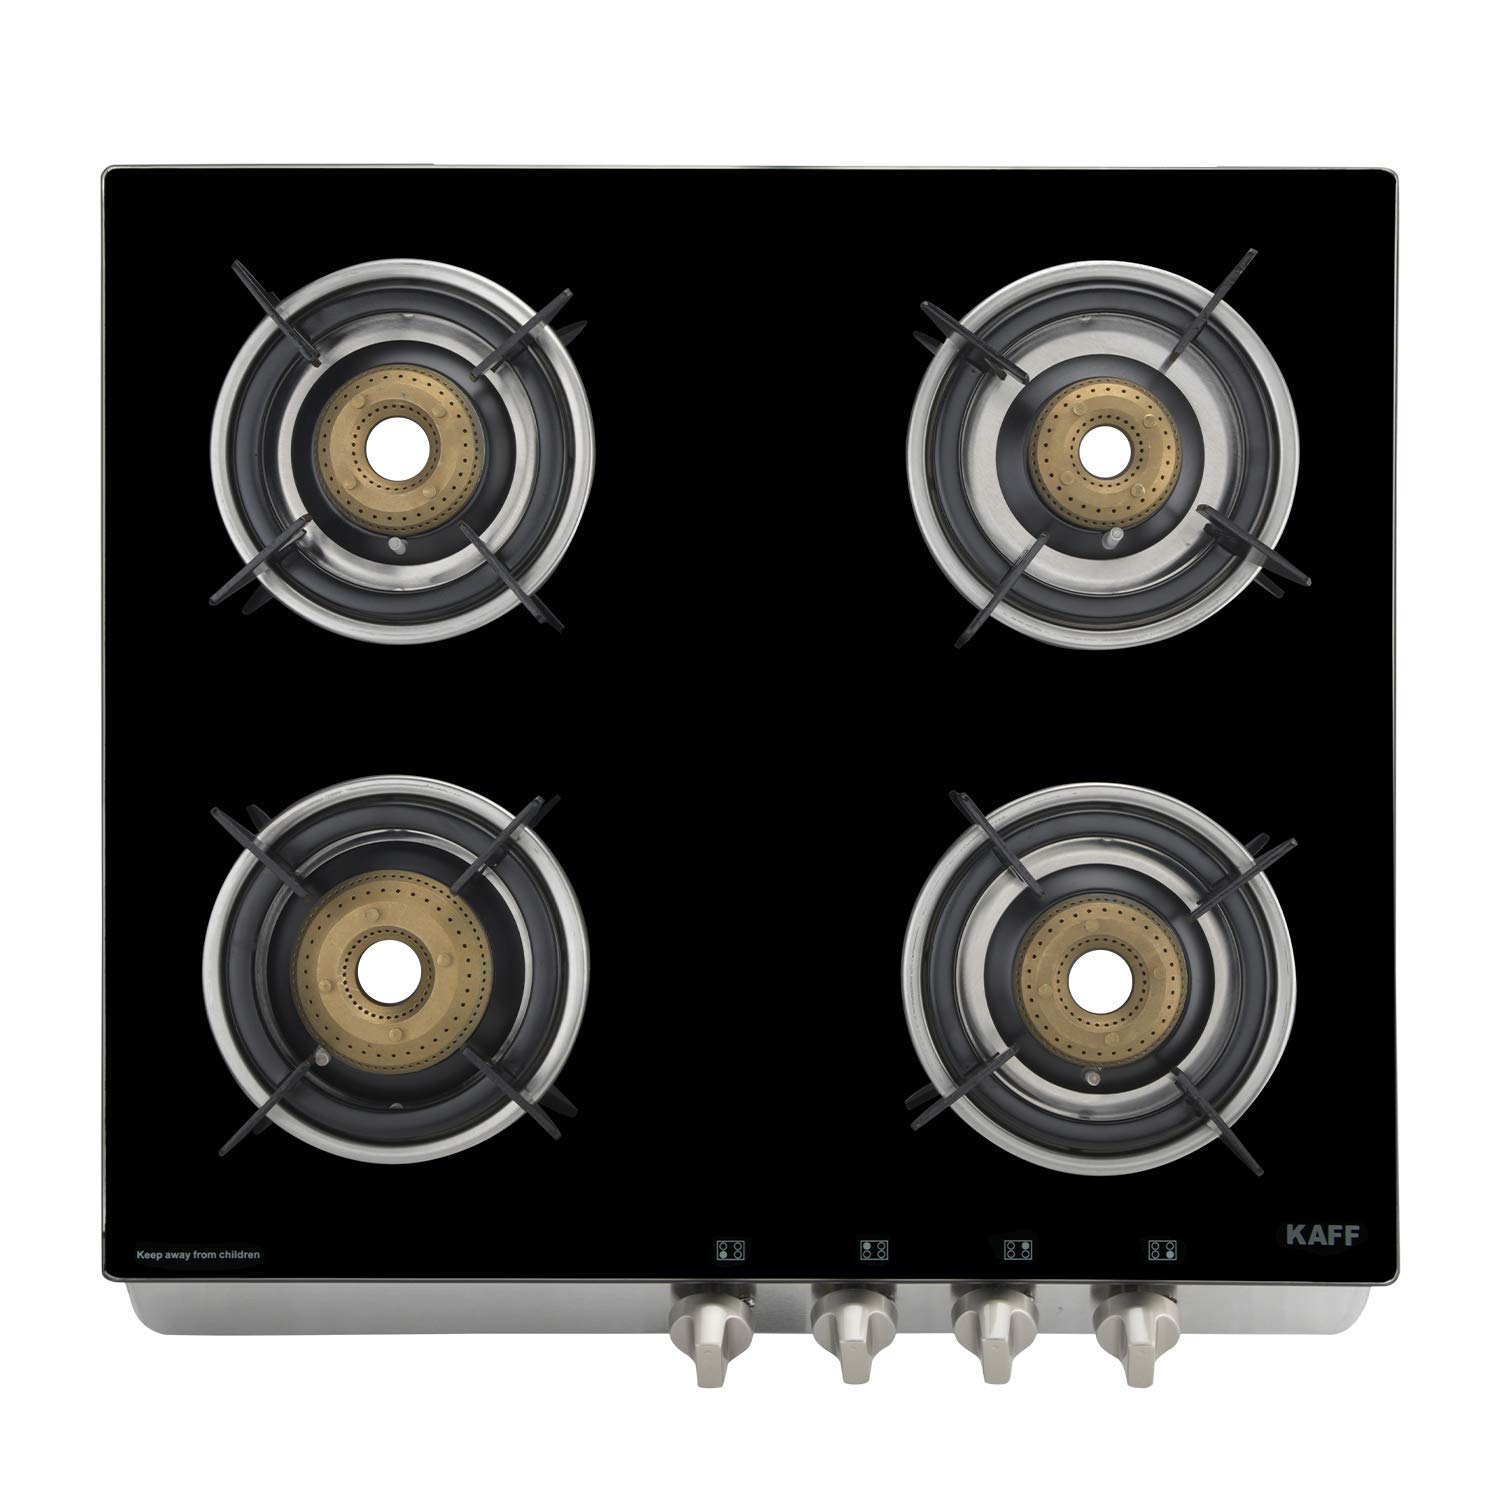 Kaff 4 Burner Auto Ignition Cooktop (Stainless Steel)